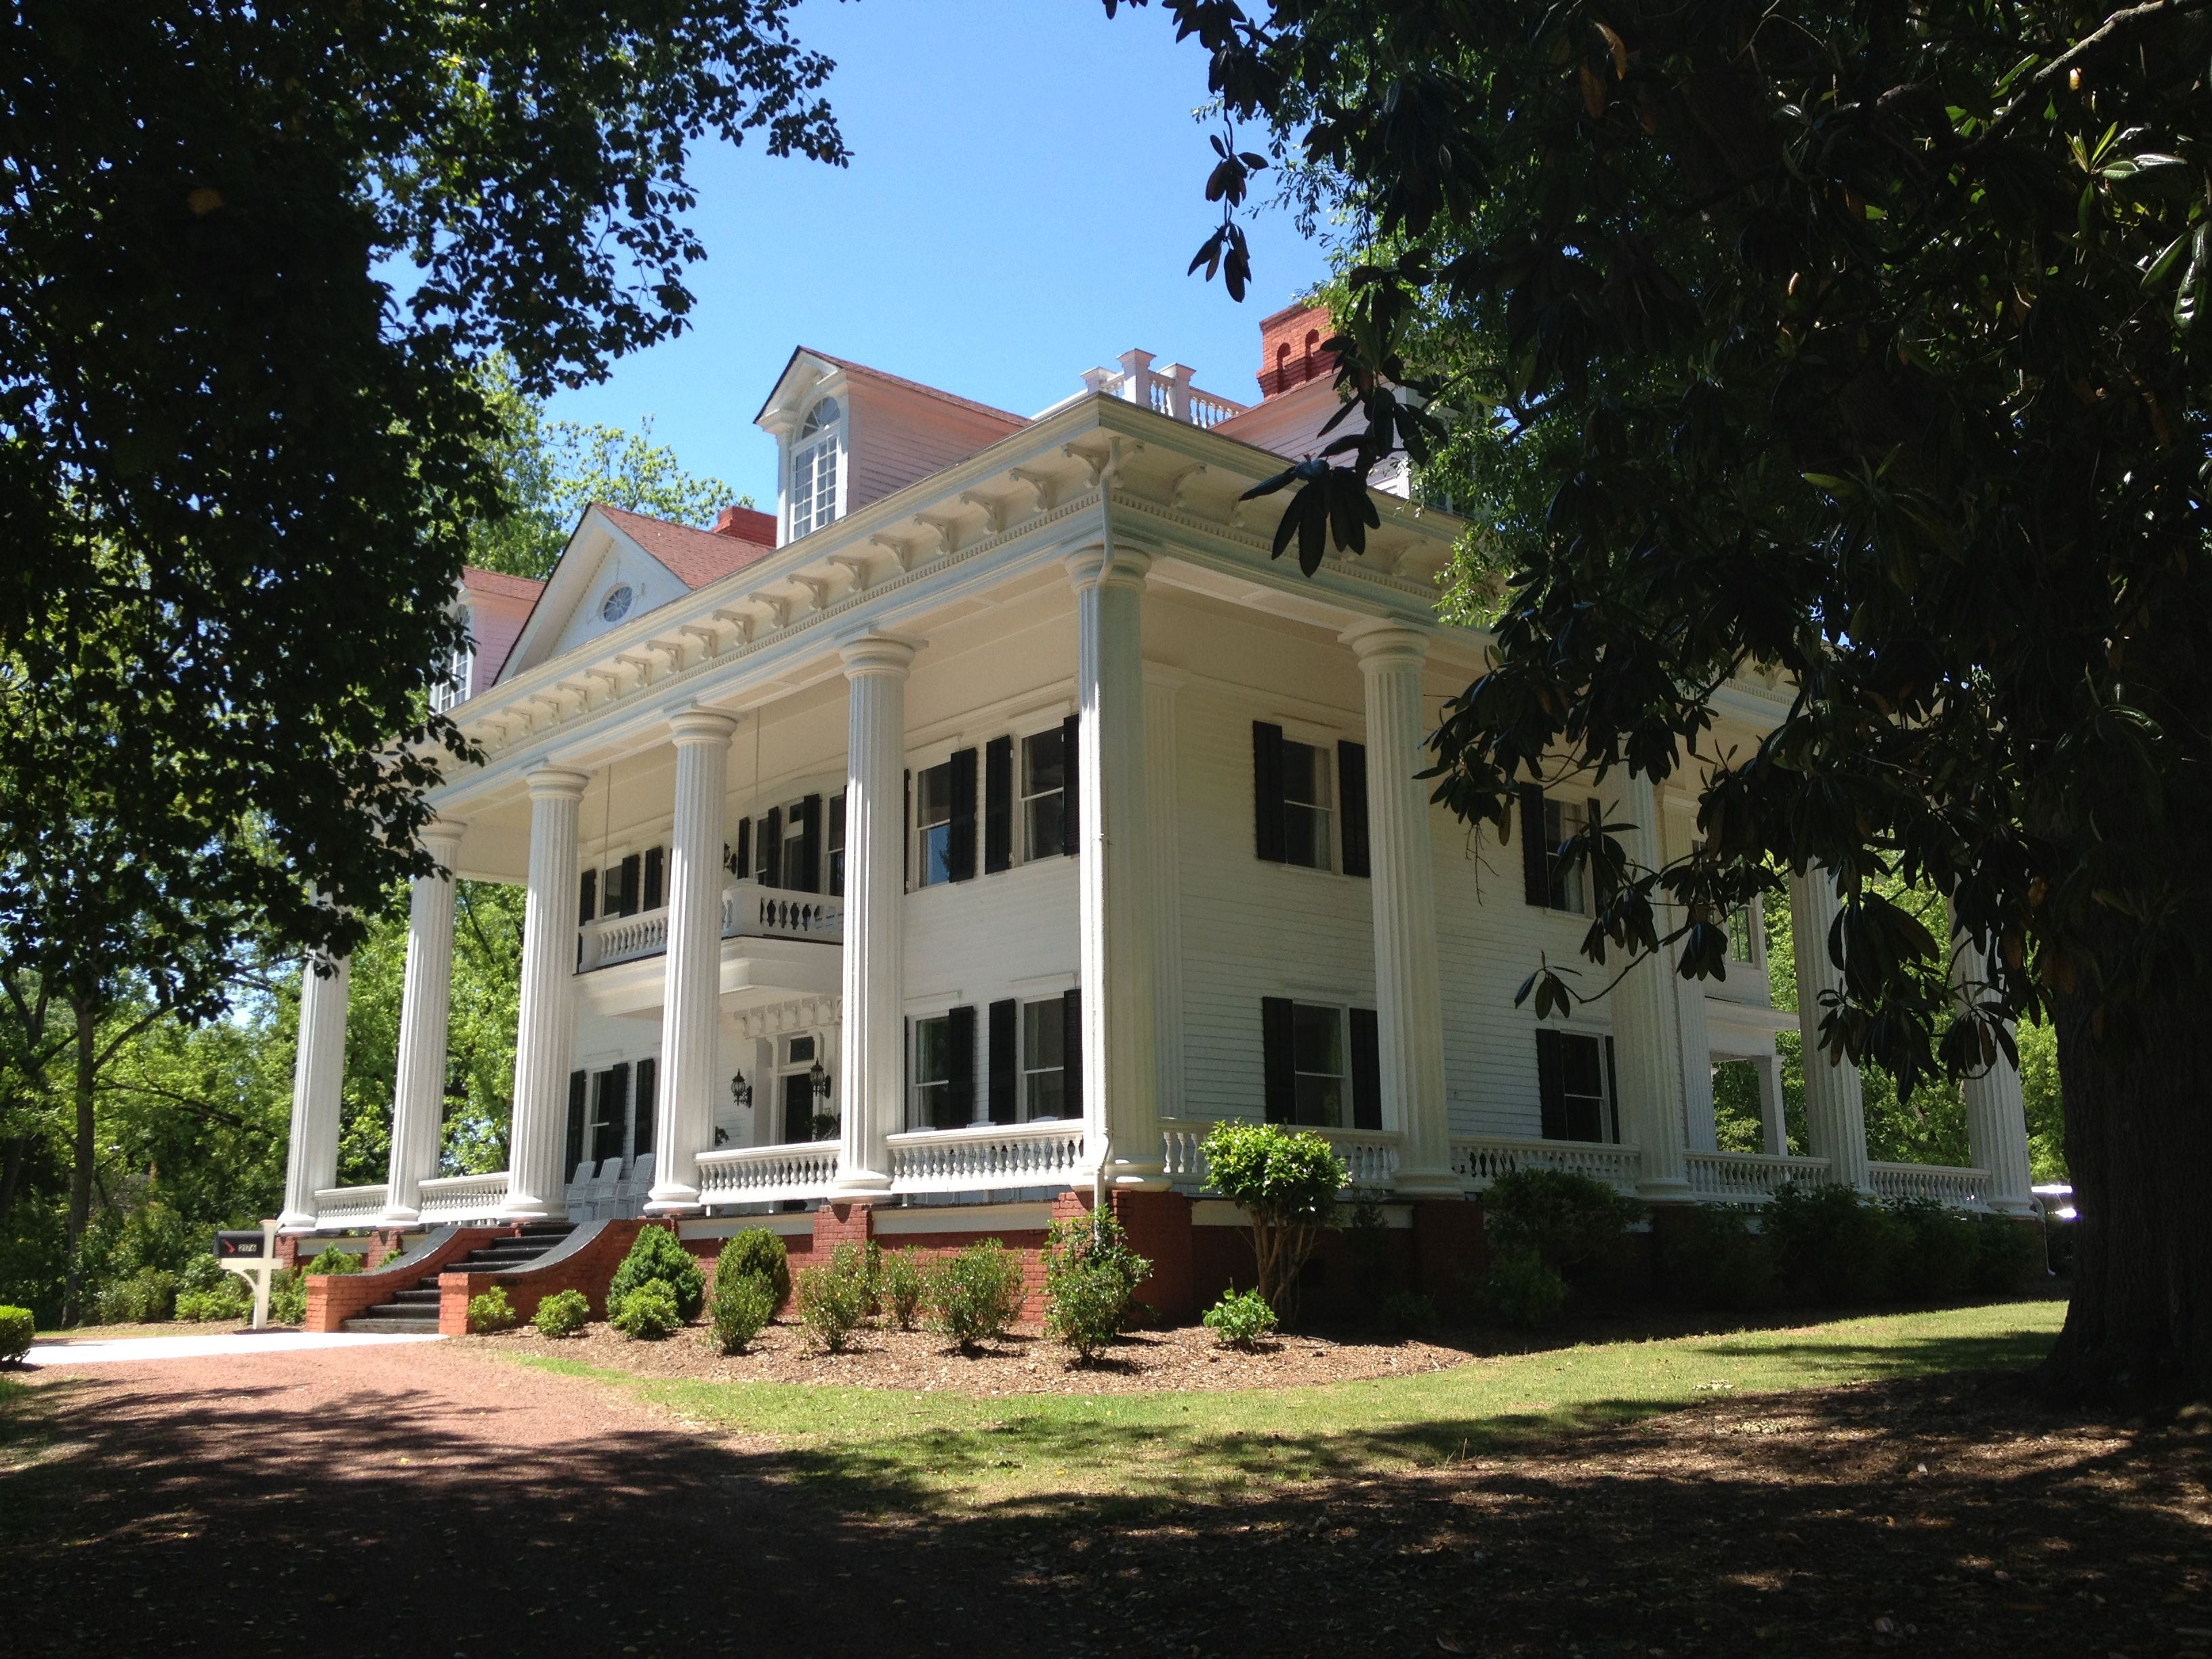 Twelve Oaks Bed Breakfast In Covington Georgia Was The Inspiration For Gone With Wind I Love This Old Southern Antebellum Home